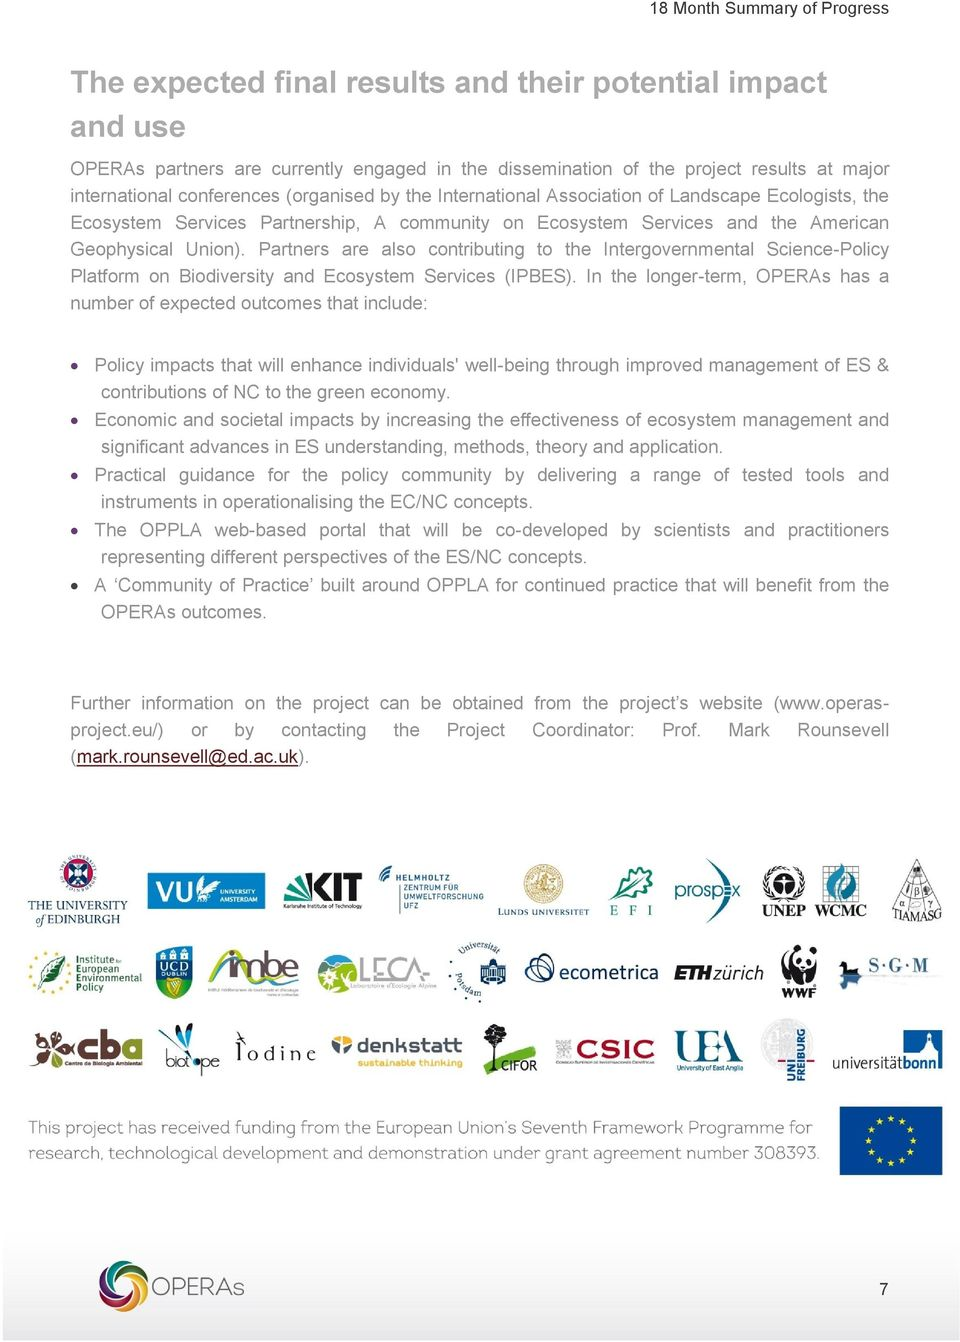 Partners are also contributing to the Intergovernmental Science-Policy Platform on Biodiversity and Ecosystem Services (IPBES).